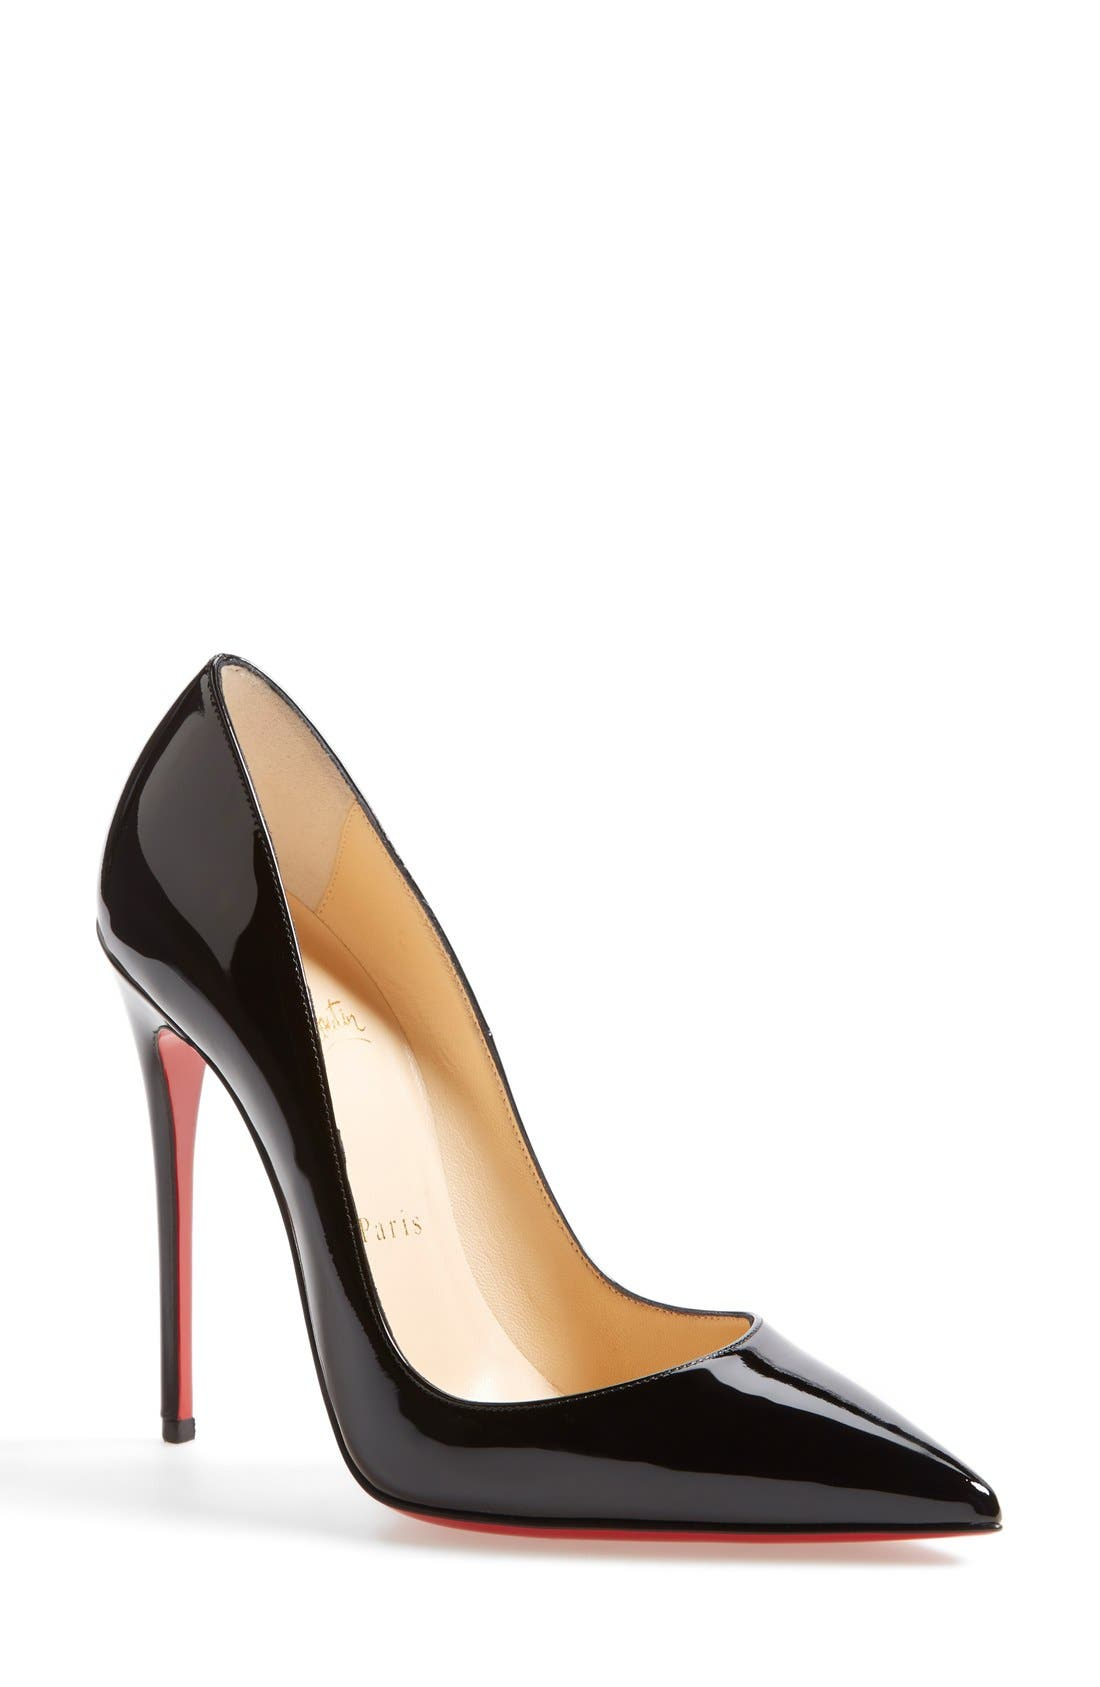 CHRISTIAN LOUBOUTIN, So Kate Pointy Toe Pump, Main thumbnail 1, color, BLACK